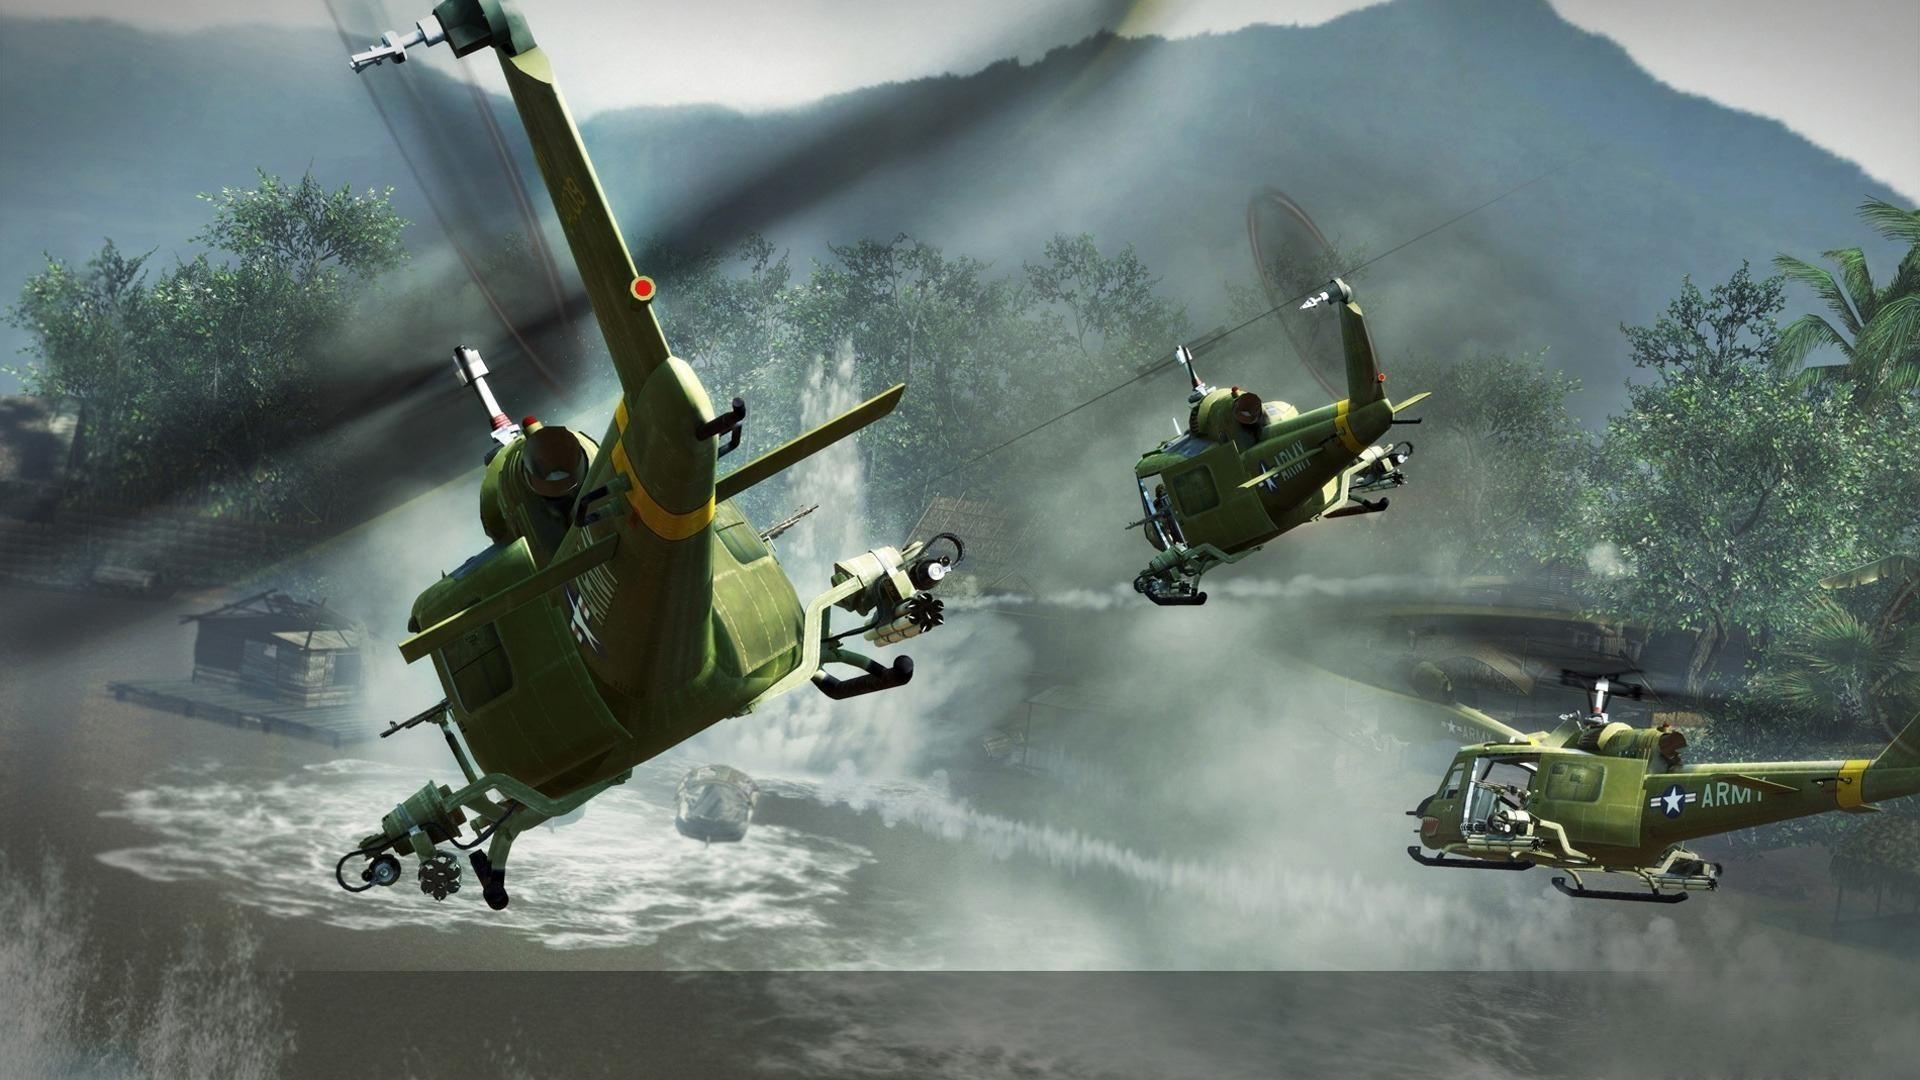 Army Helicopters Wallpaper 1920x1080 Army Helicopters Chopper 1920x1080